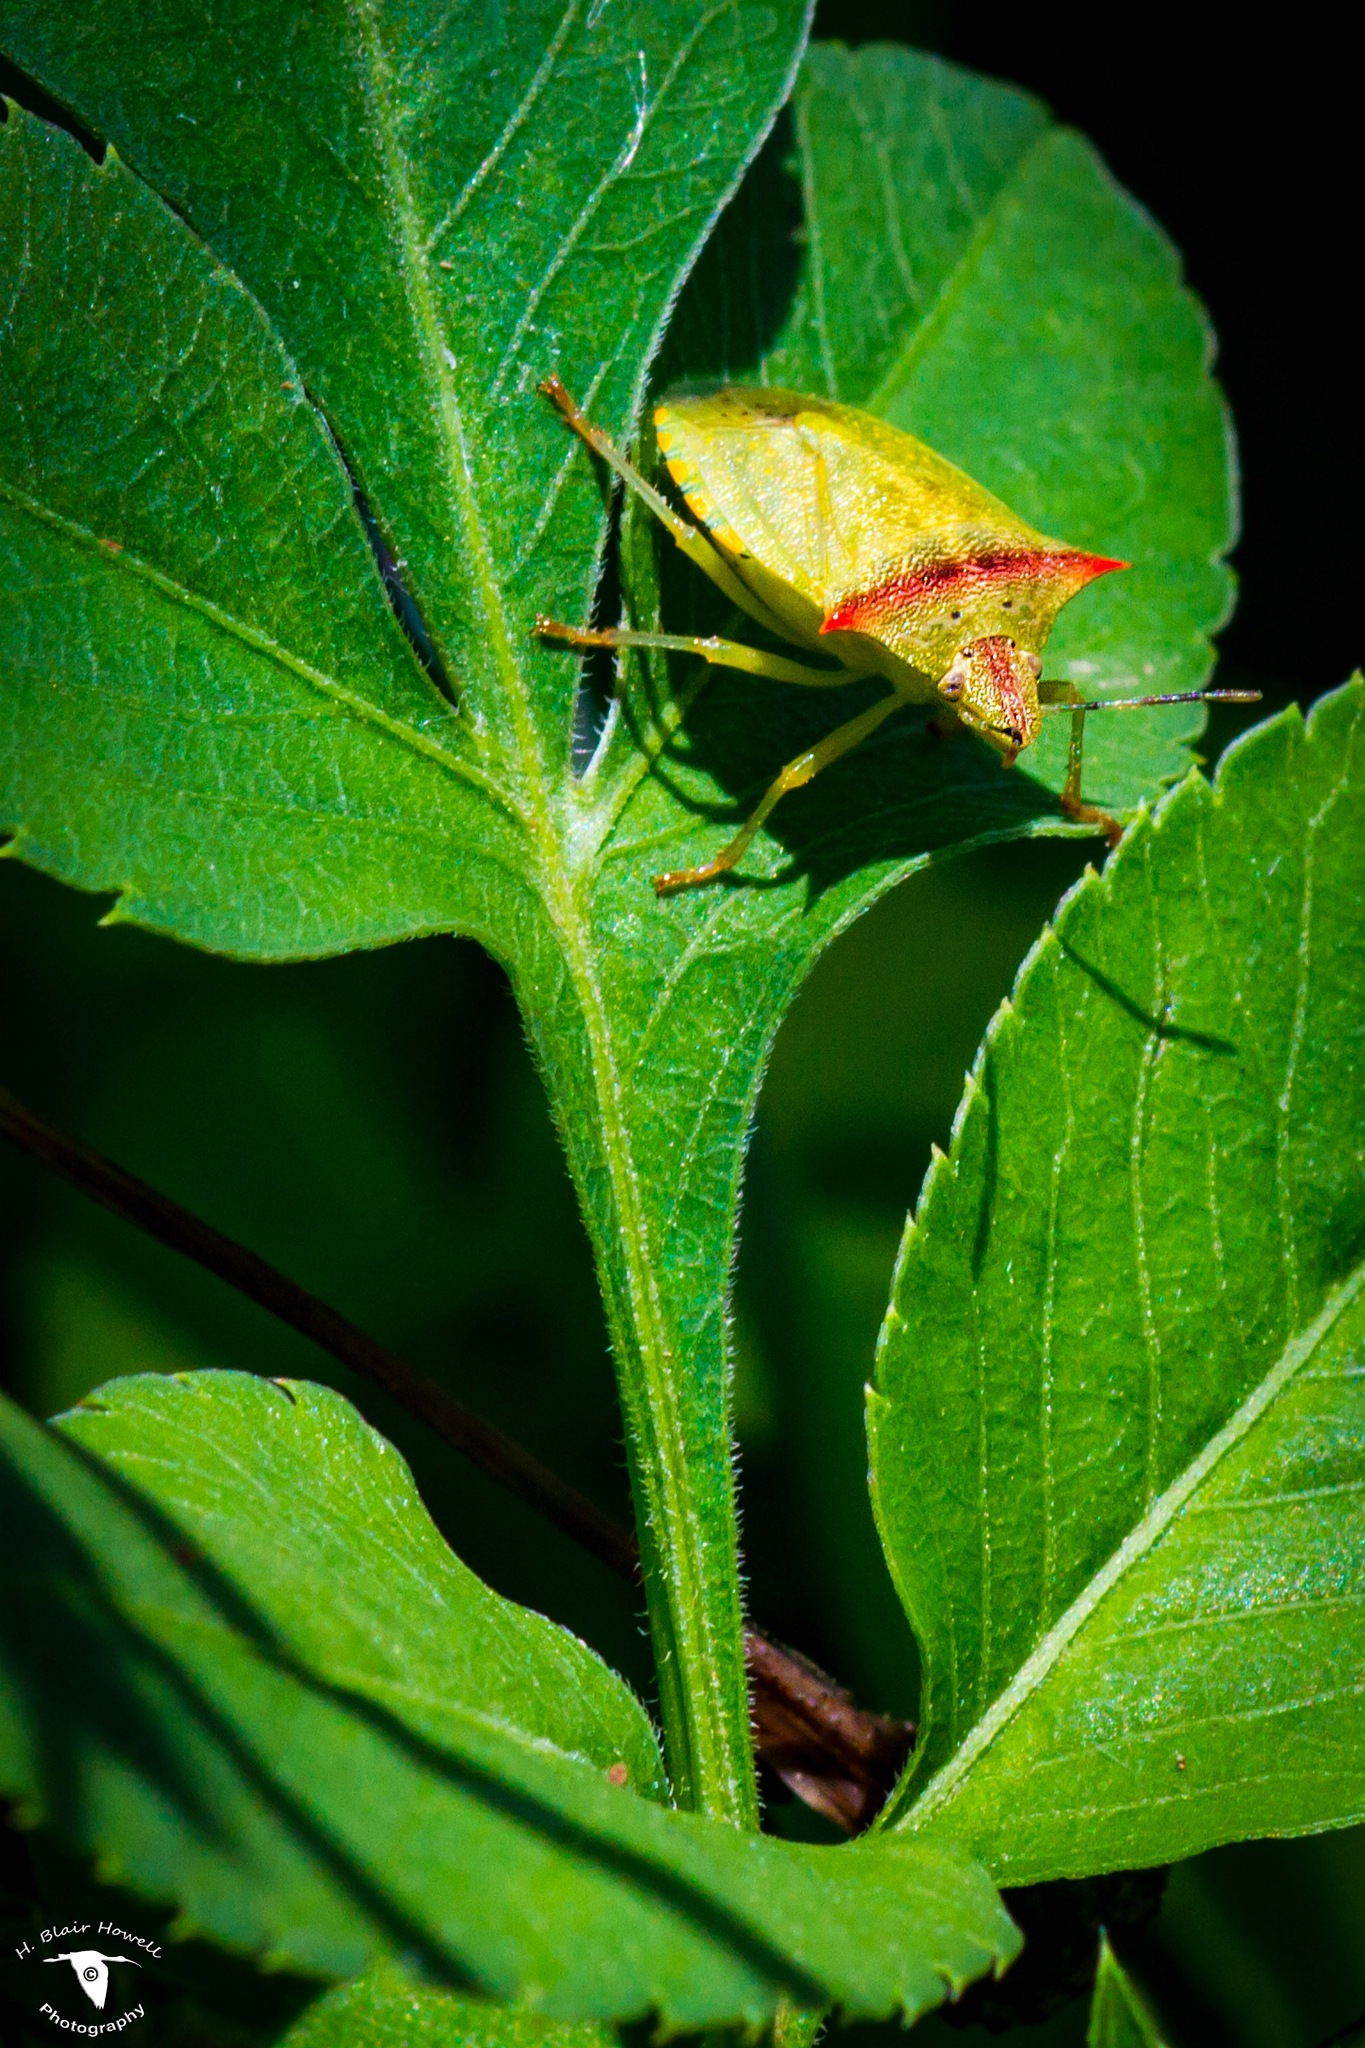 Green Stink Bug by HBlairHowell